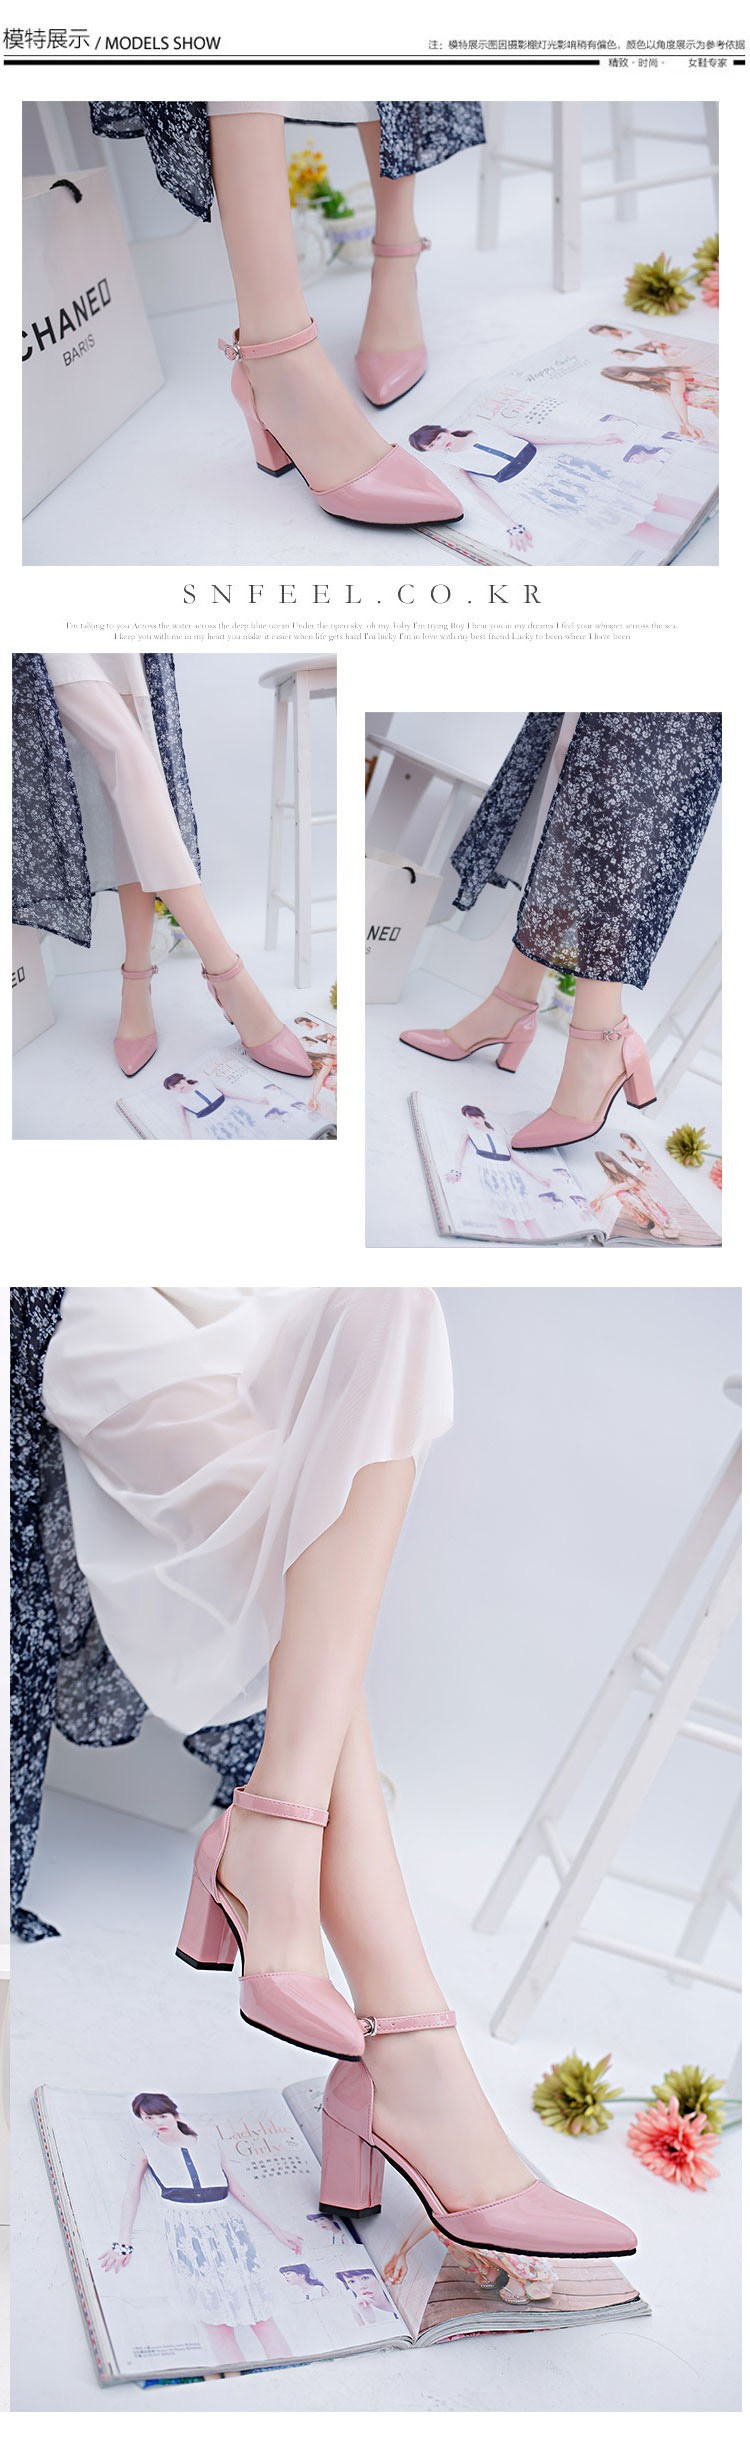 2016 Summer High Heels Shoes Women Sexy Pointed Toe Pumps Office Ladies Fashion Wedges Platform Shoes SS1605054